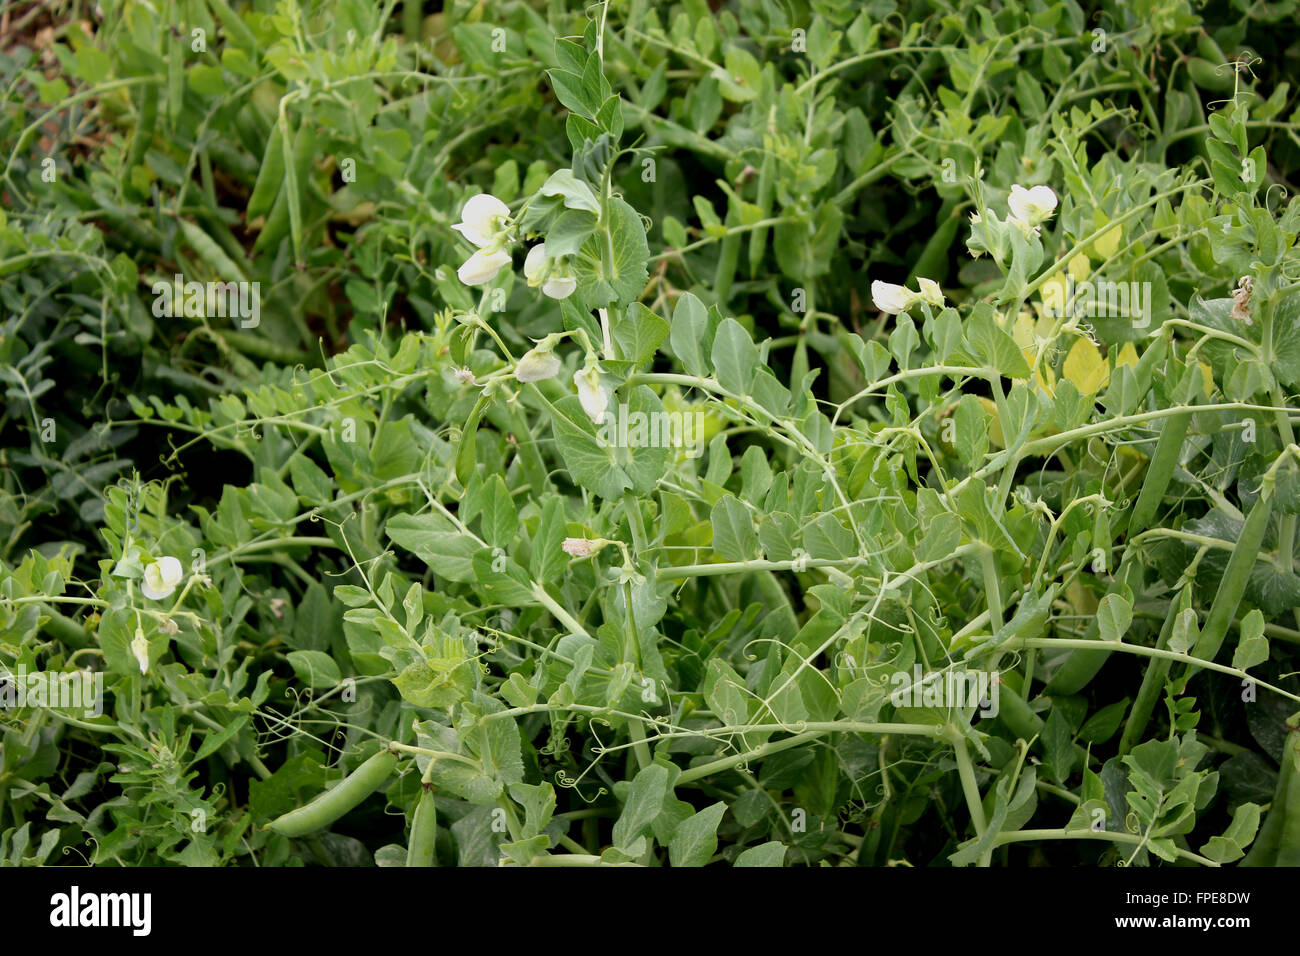 Garden Pea, Pisum sativum, cultivated annual herb with pinnate compound leaves, terminal tendrils, white flowers - Stock Image